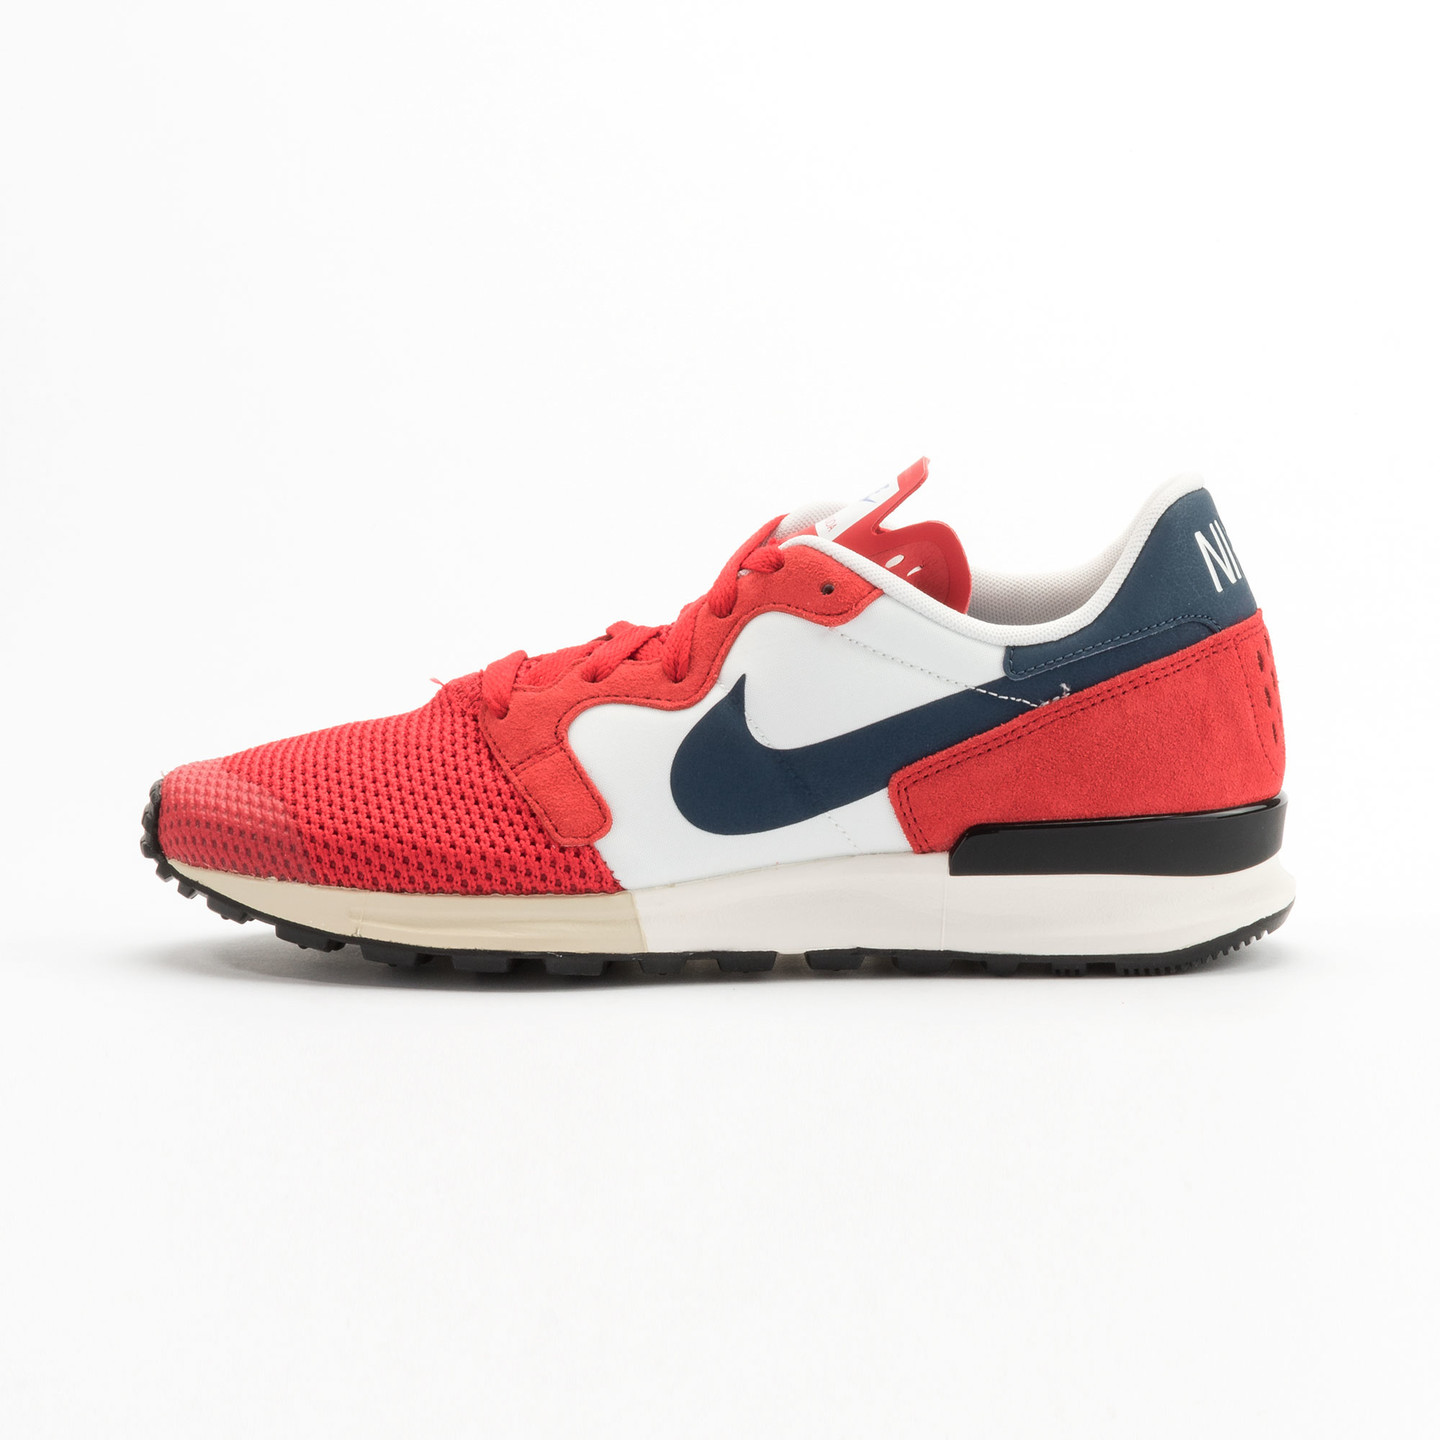 Nike Air Berwuda University Red / Squadron Blue / Summit White 555305-601-46